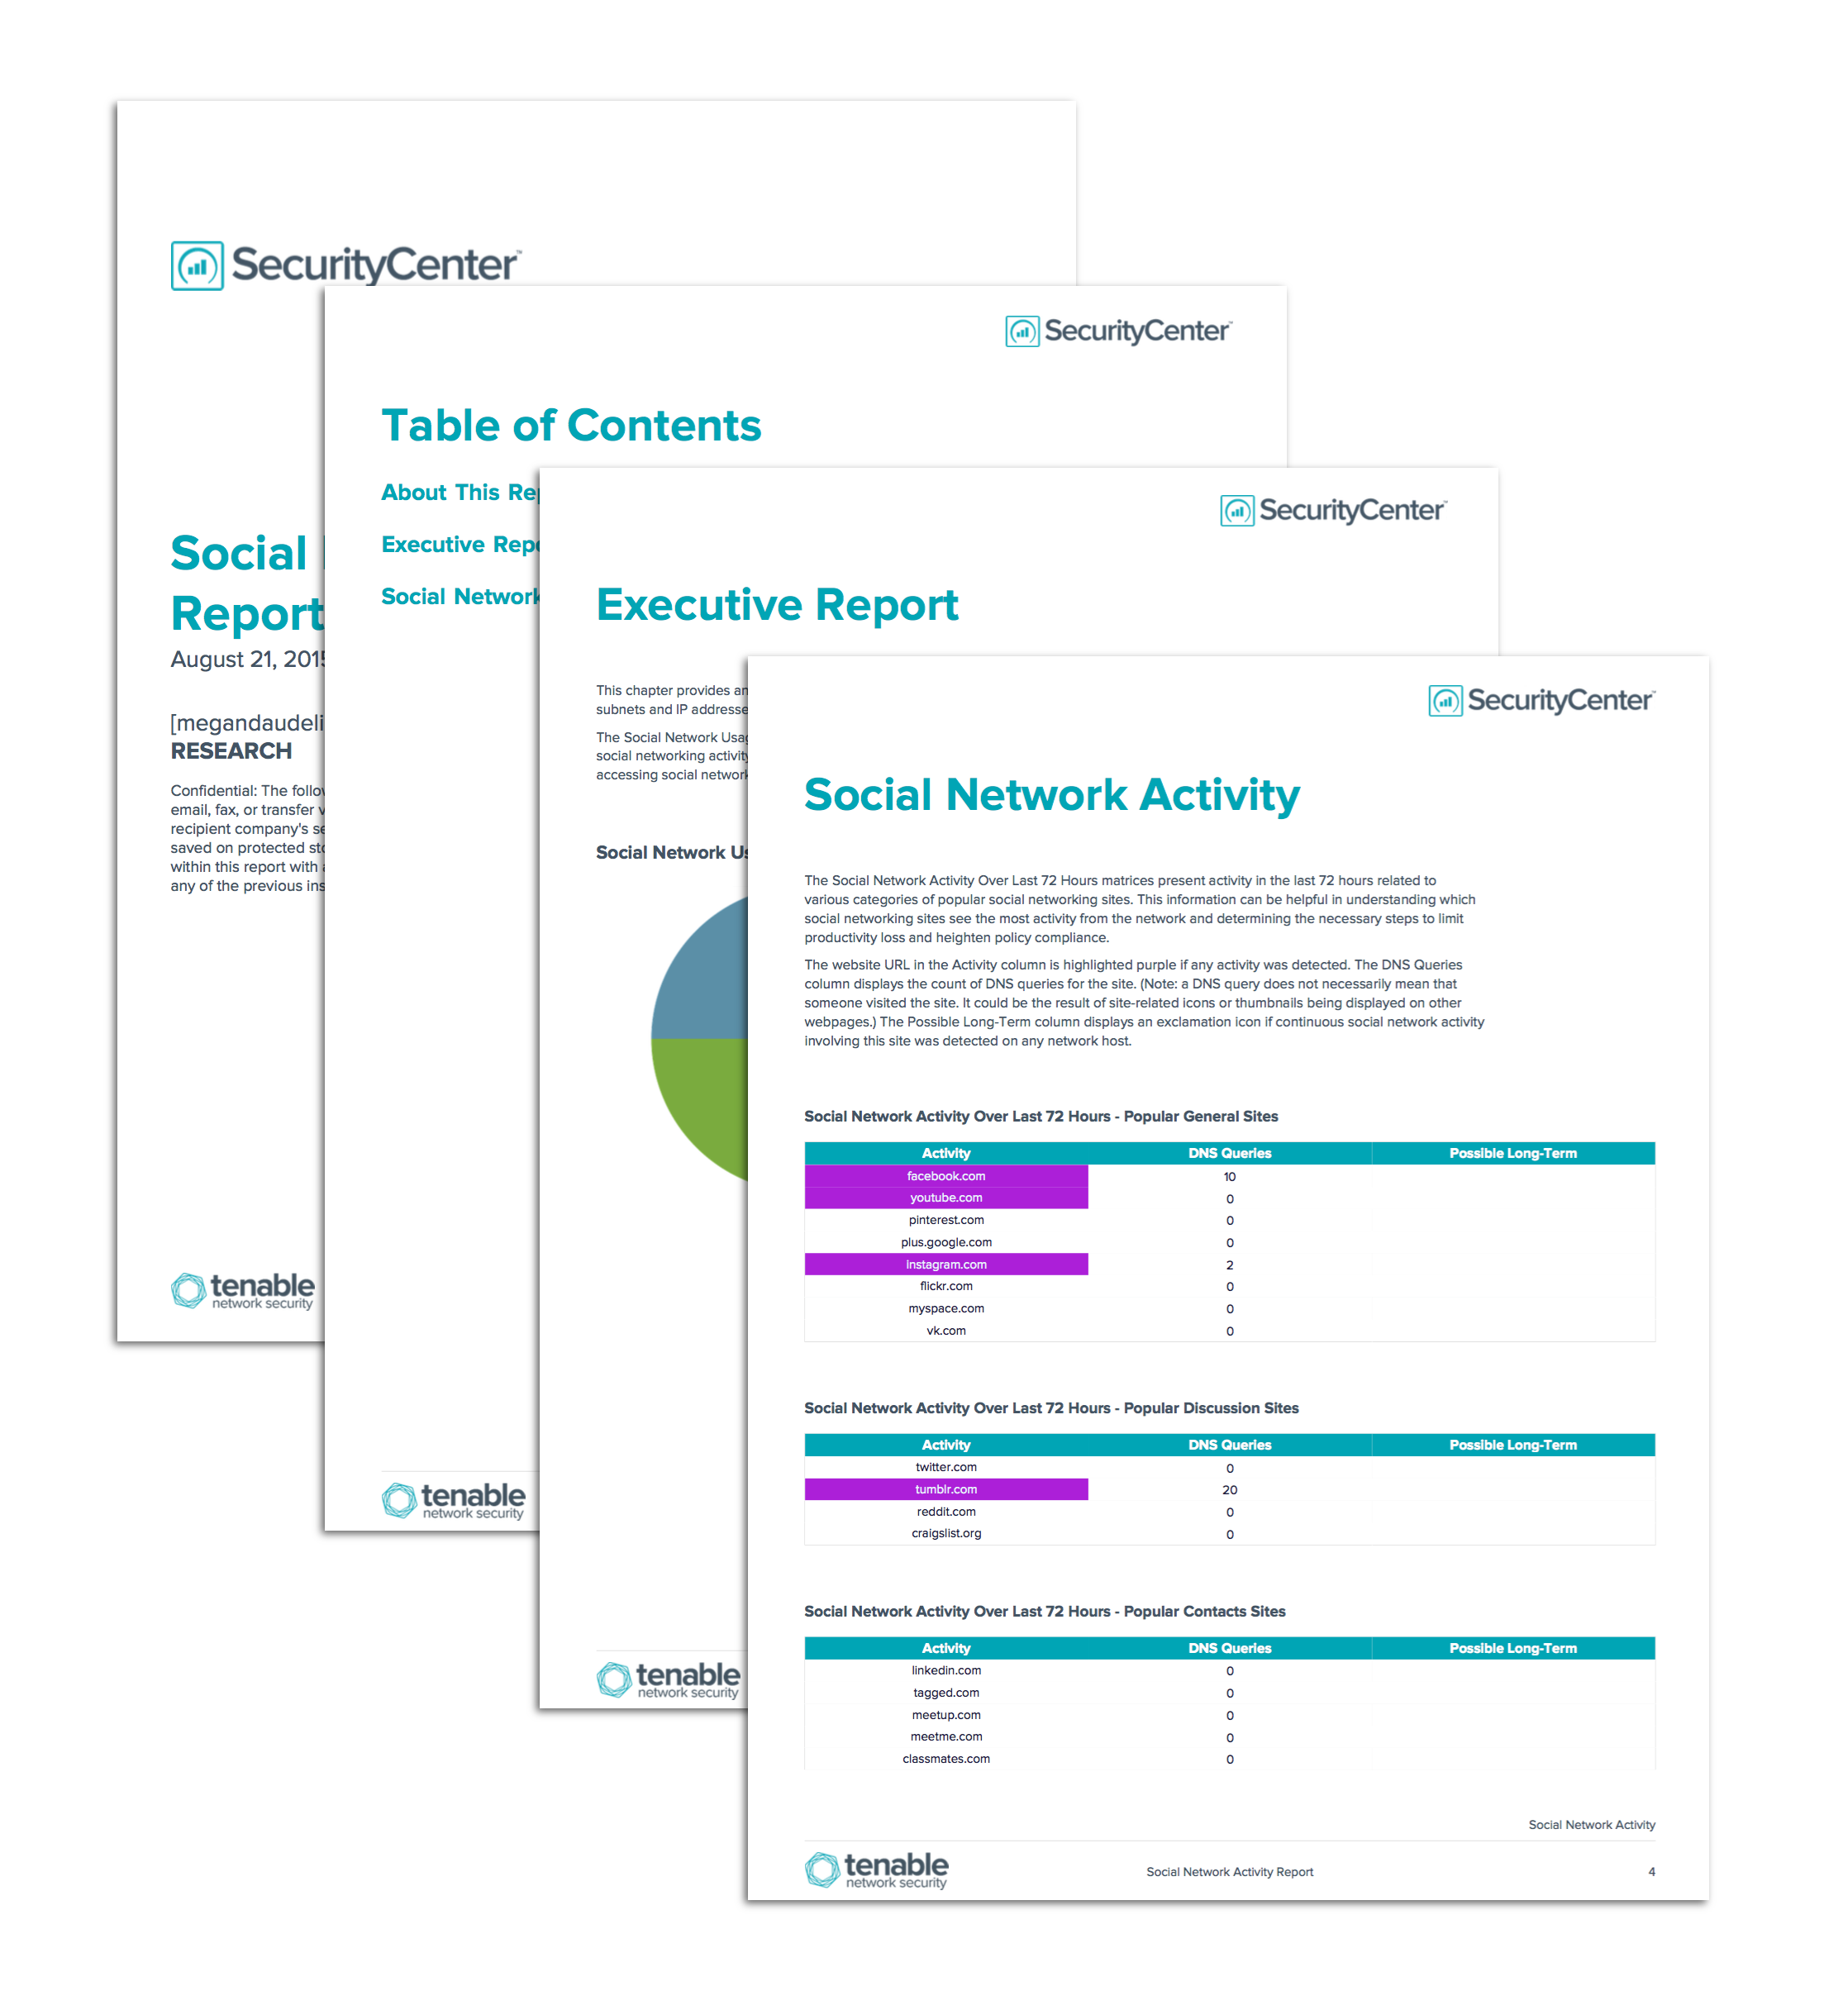 social networking sites templates php - social network activity report sc report template tenable